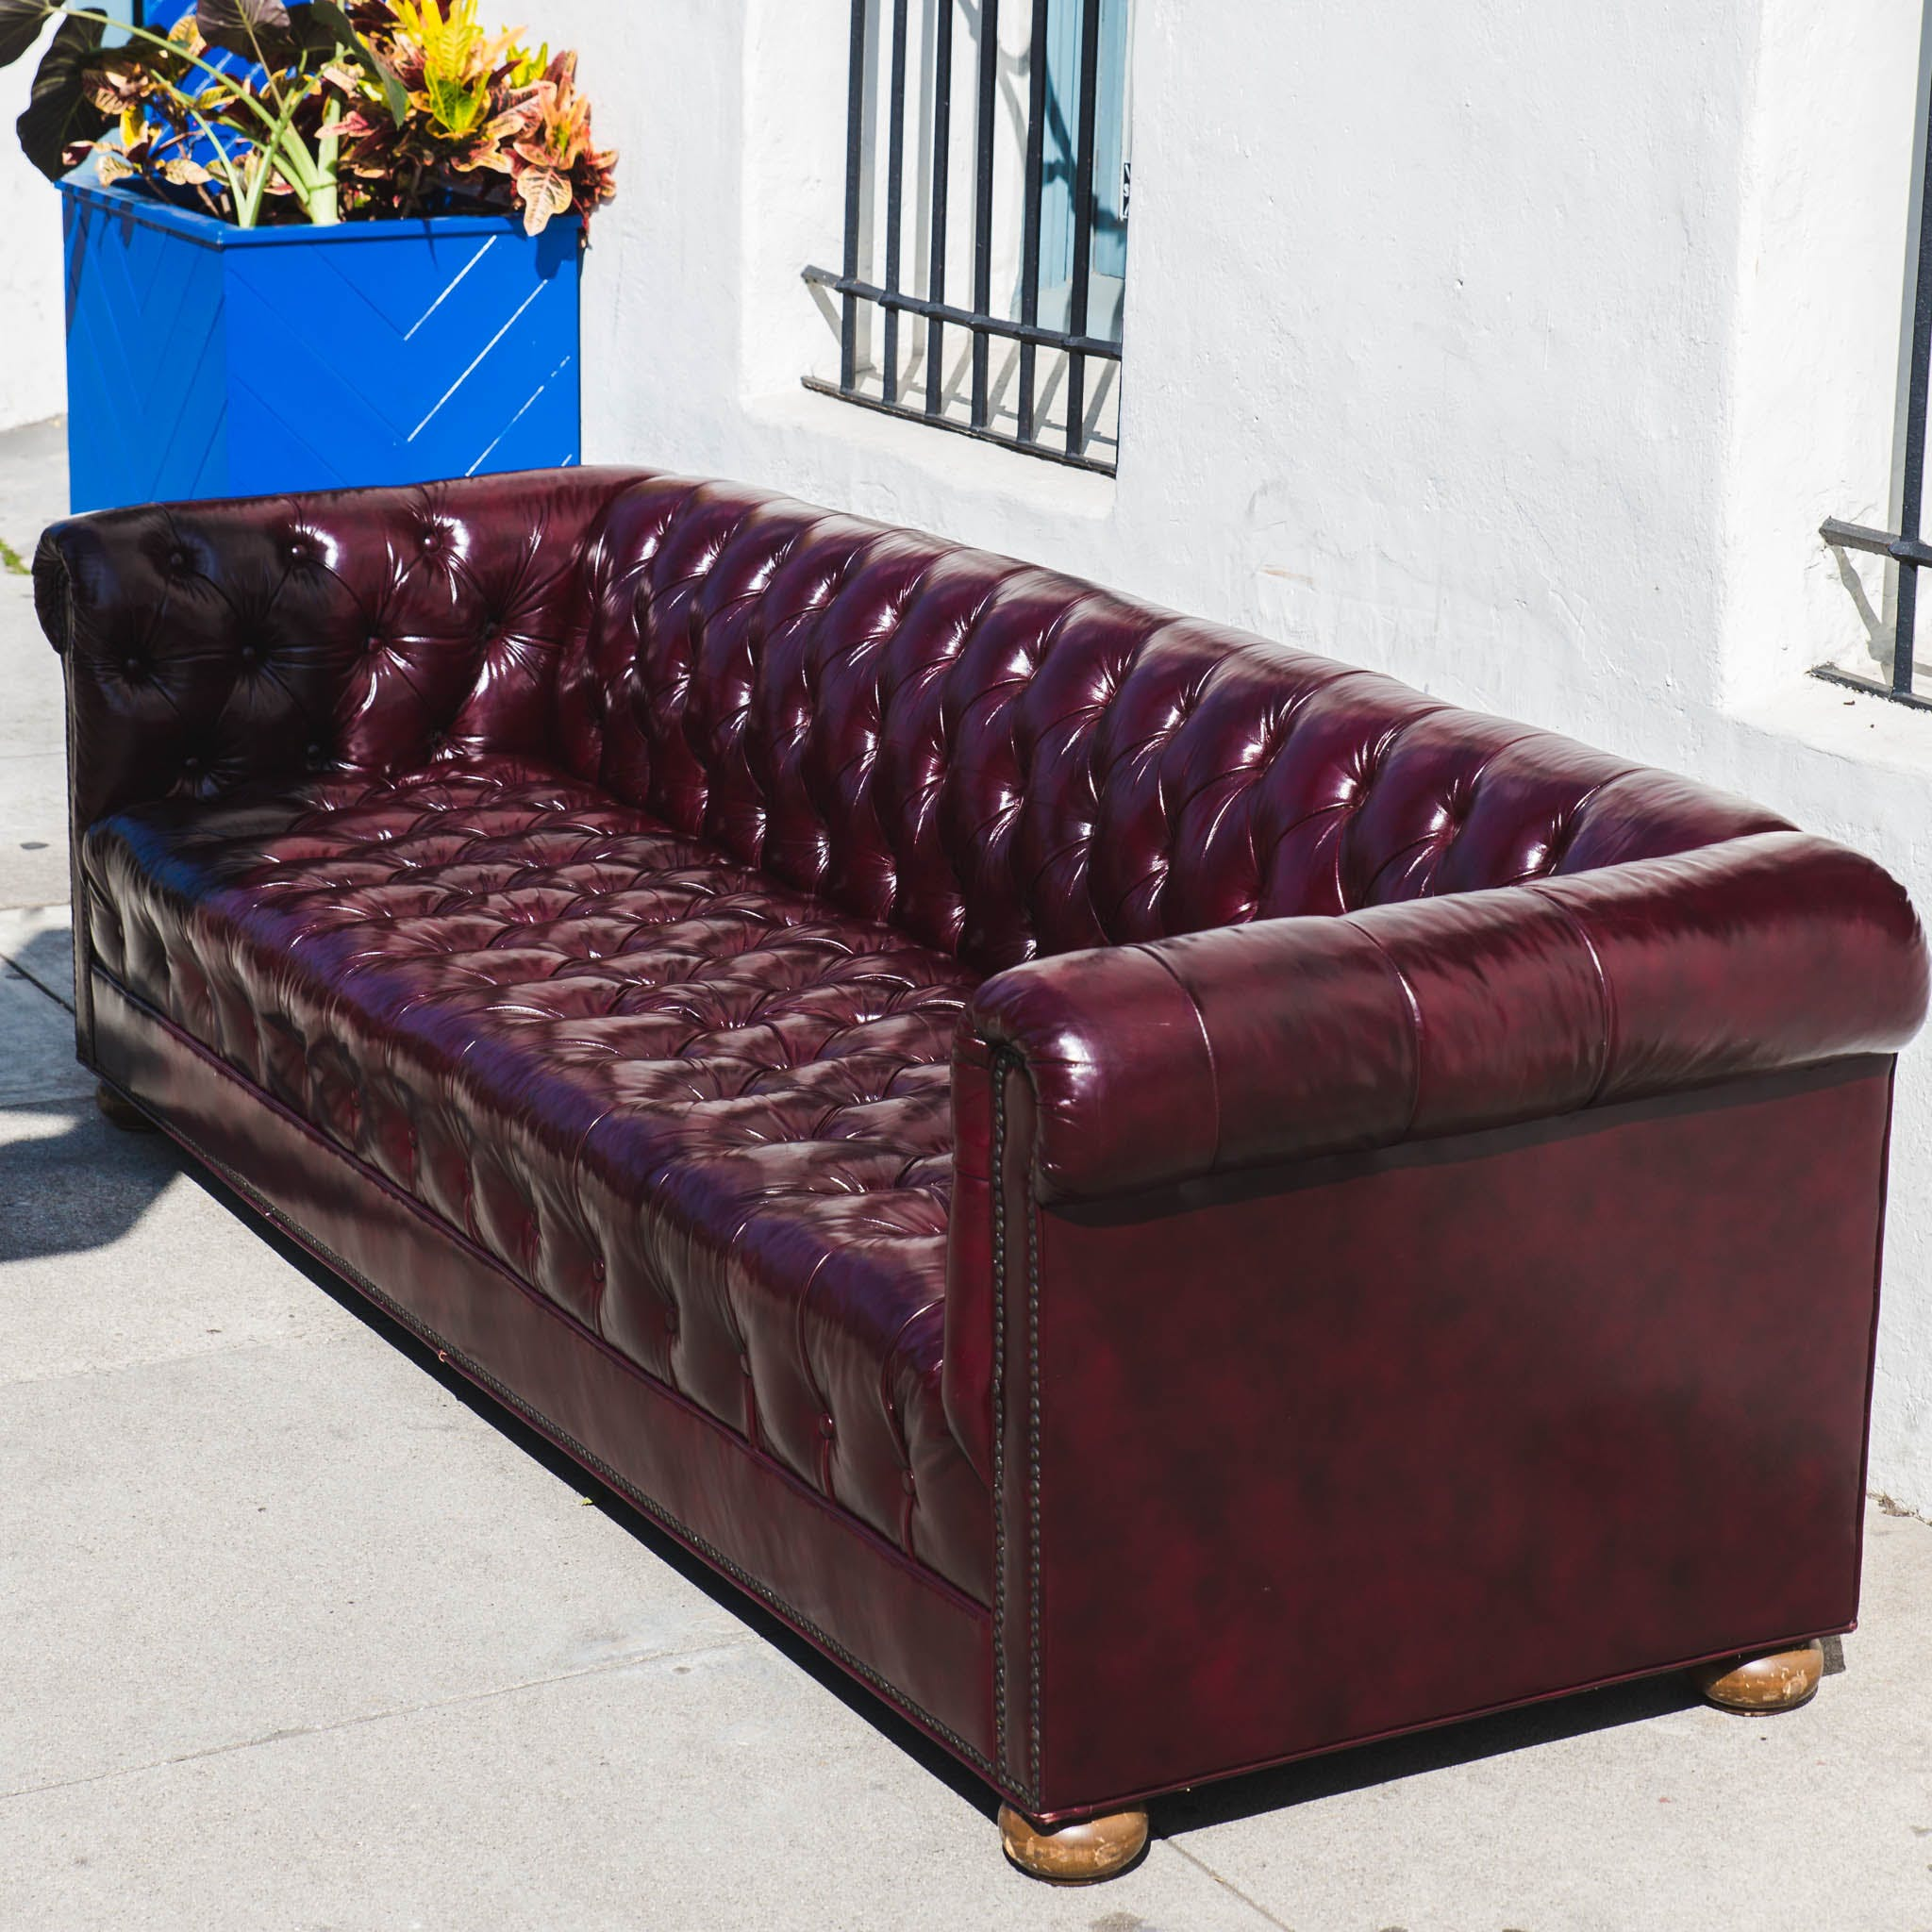 Everett Tufted Leather Settee In 2019: Vintage Leather Chesterfield Tufted Sofa